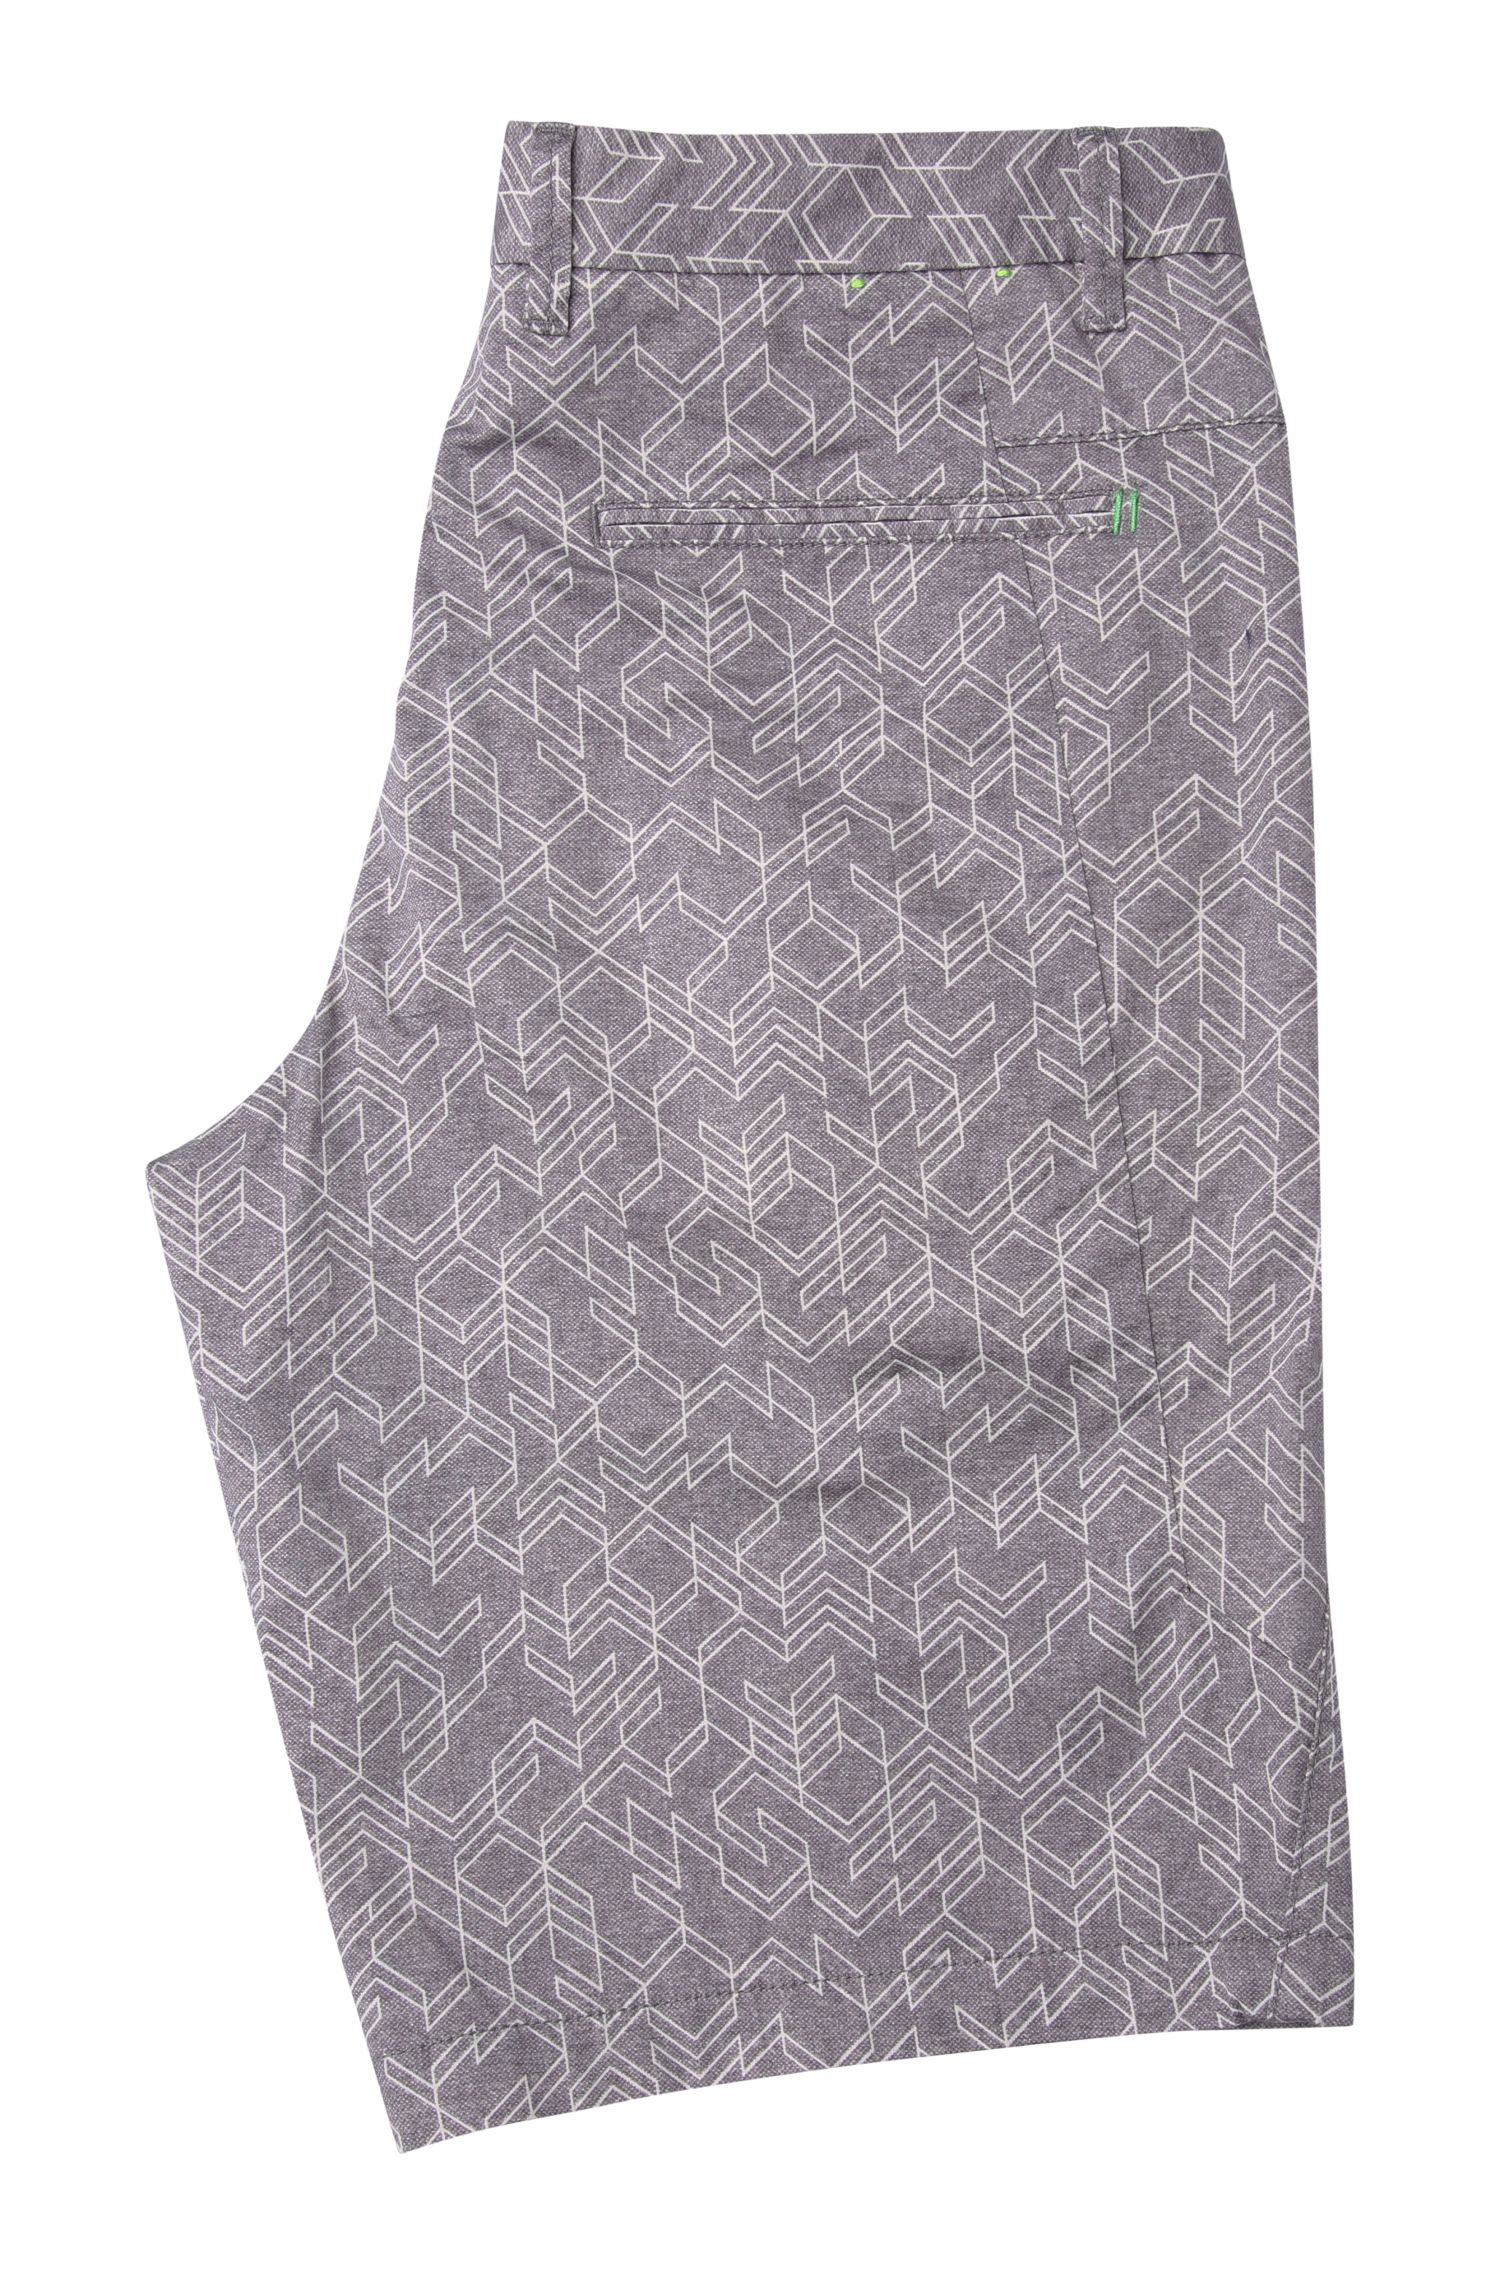 Gemusterte Slim-Fit Shorts aus Stretch-Baumwolle: ´Liem2-1-W`